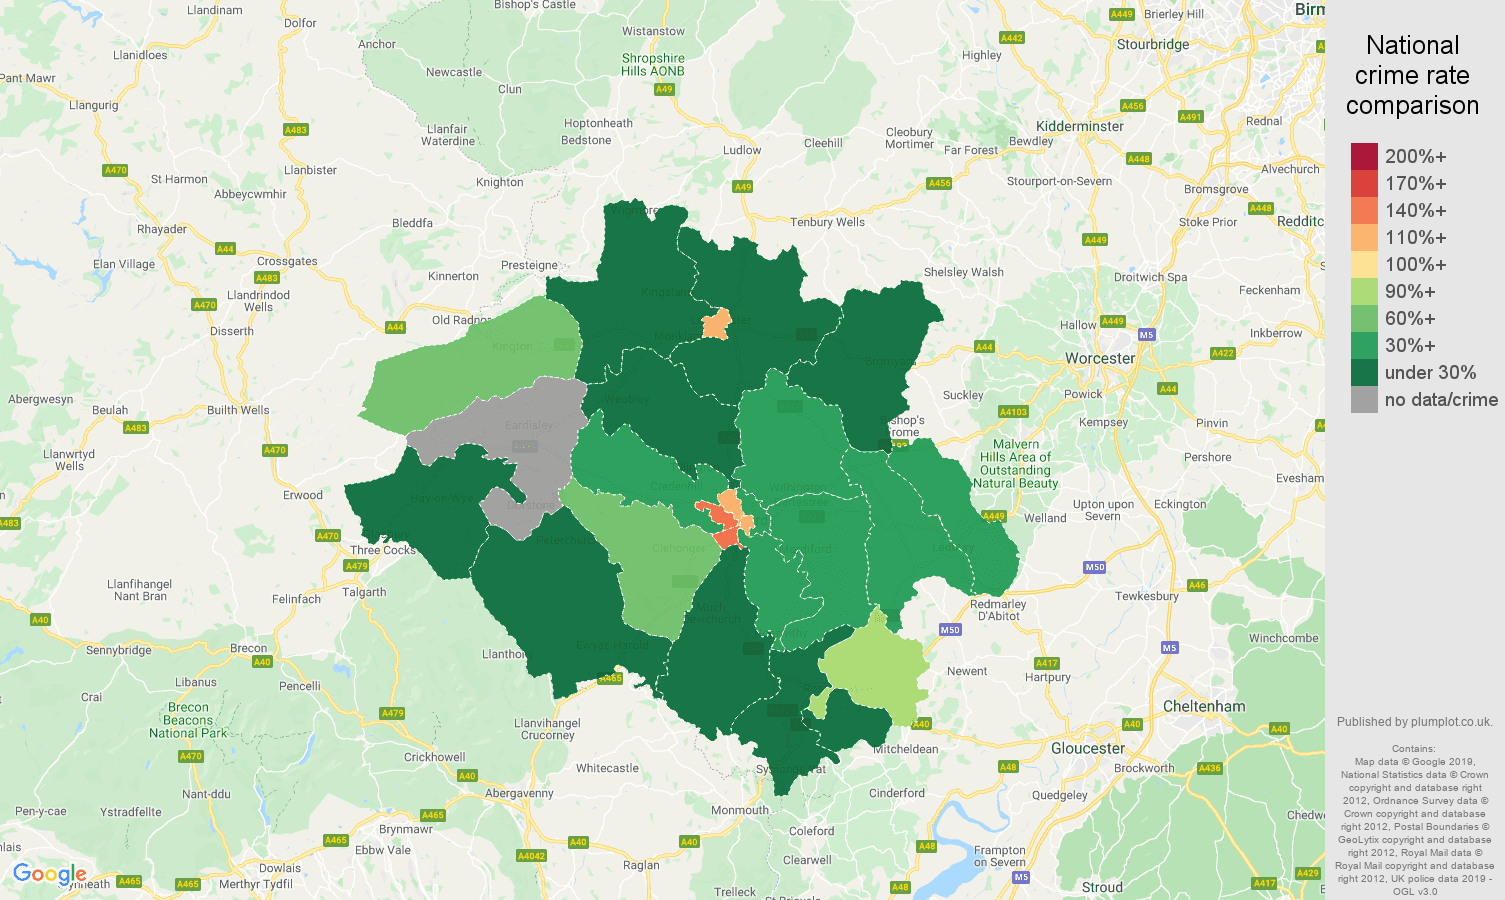 Hereford other crime rate comparison map